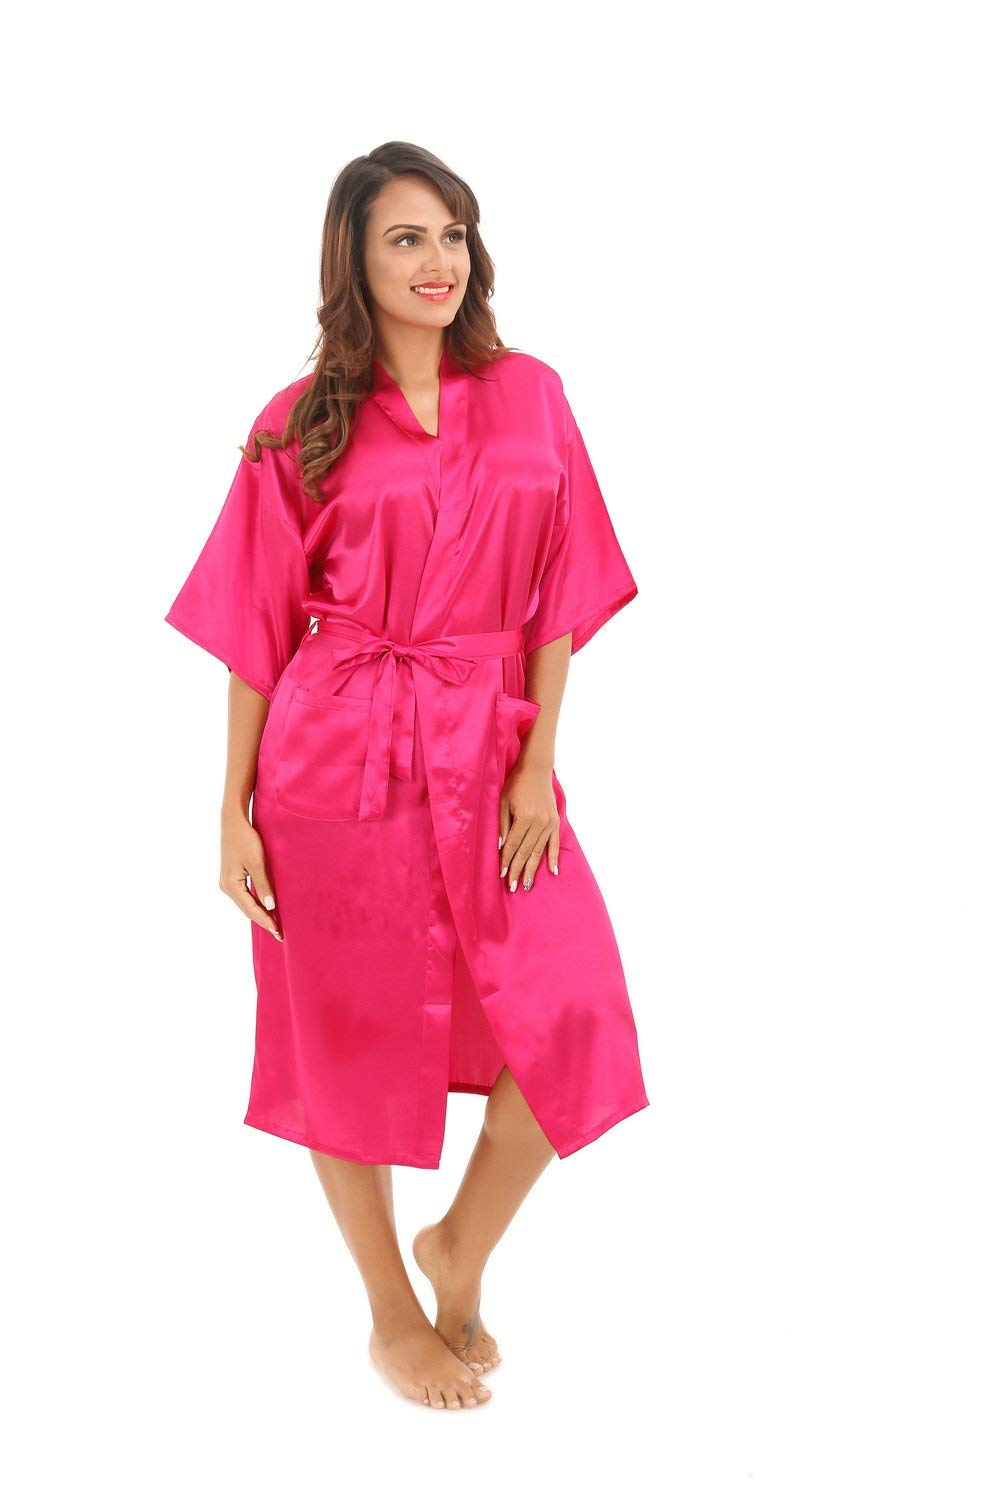 f35b70deed Get Quotations · ALJL bathrobes men and women lovers pajamas silk bathrobes  Japanese kimono comfort breathable Rose red pajamas